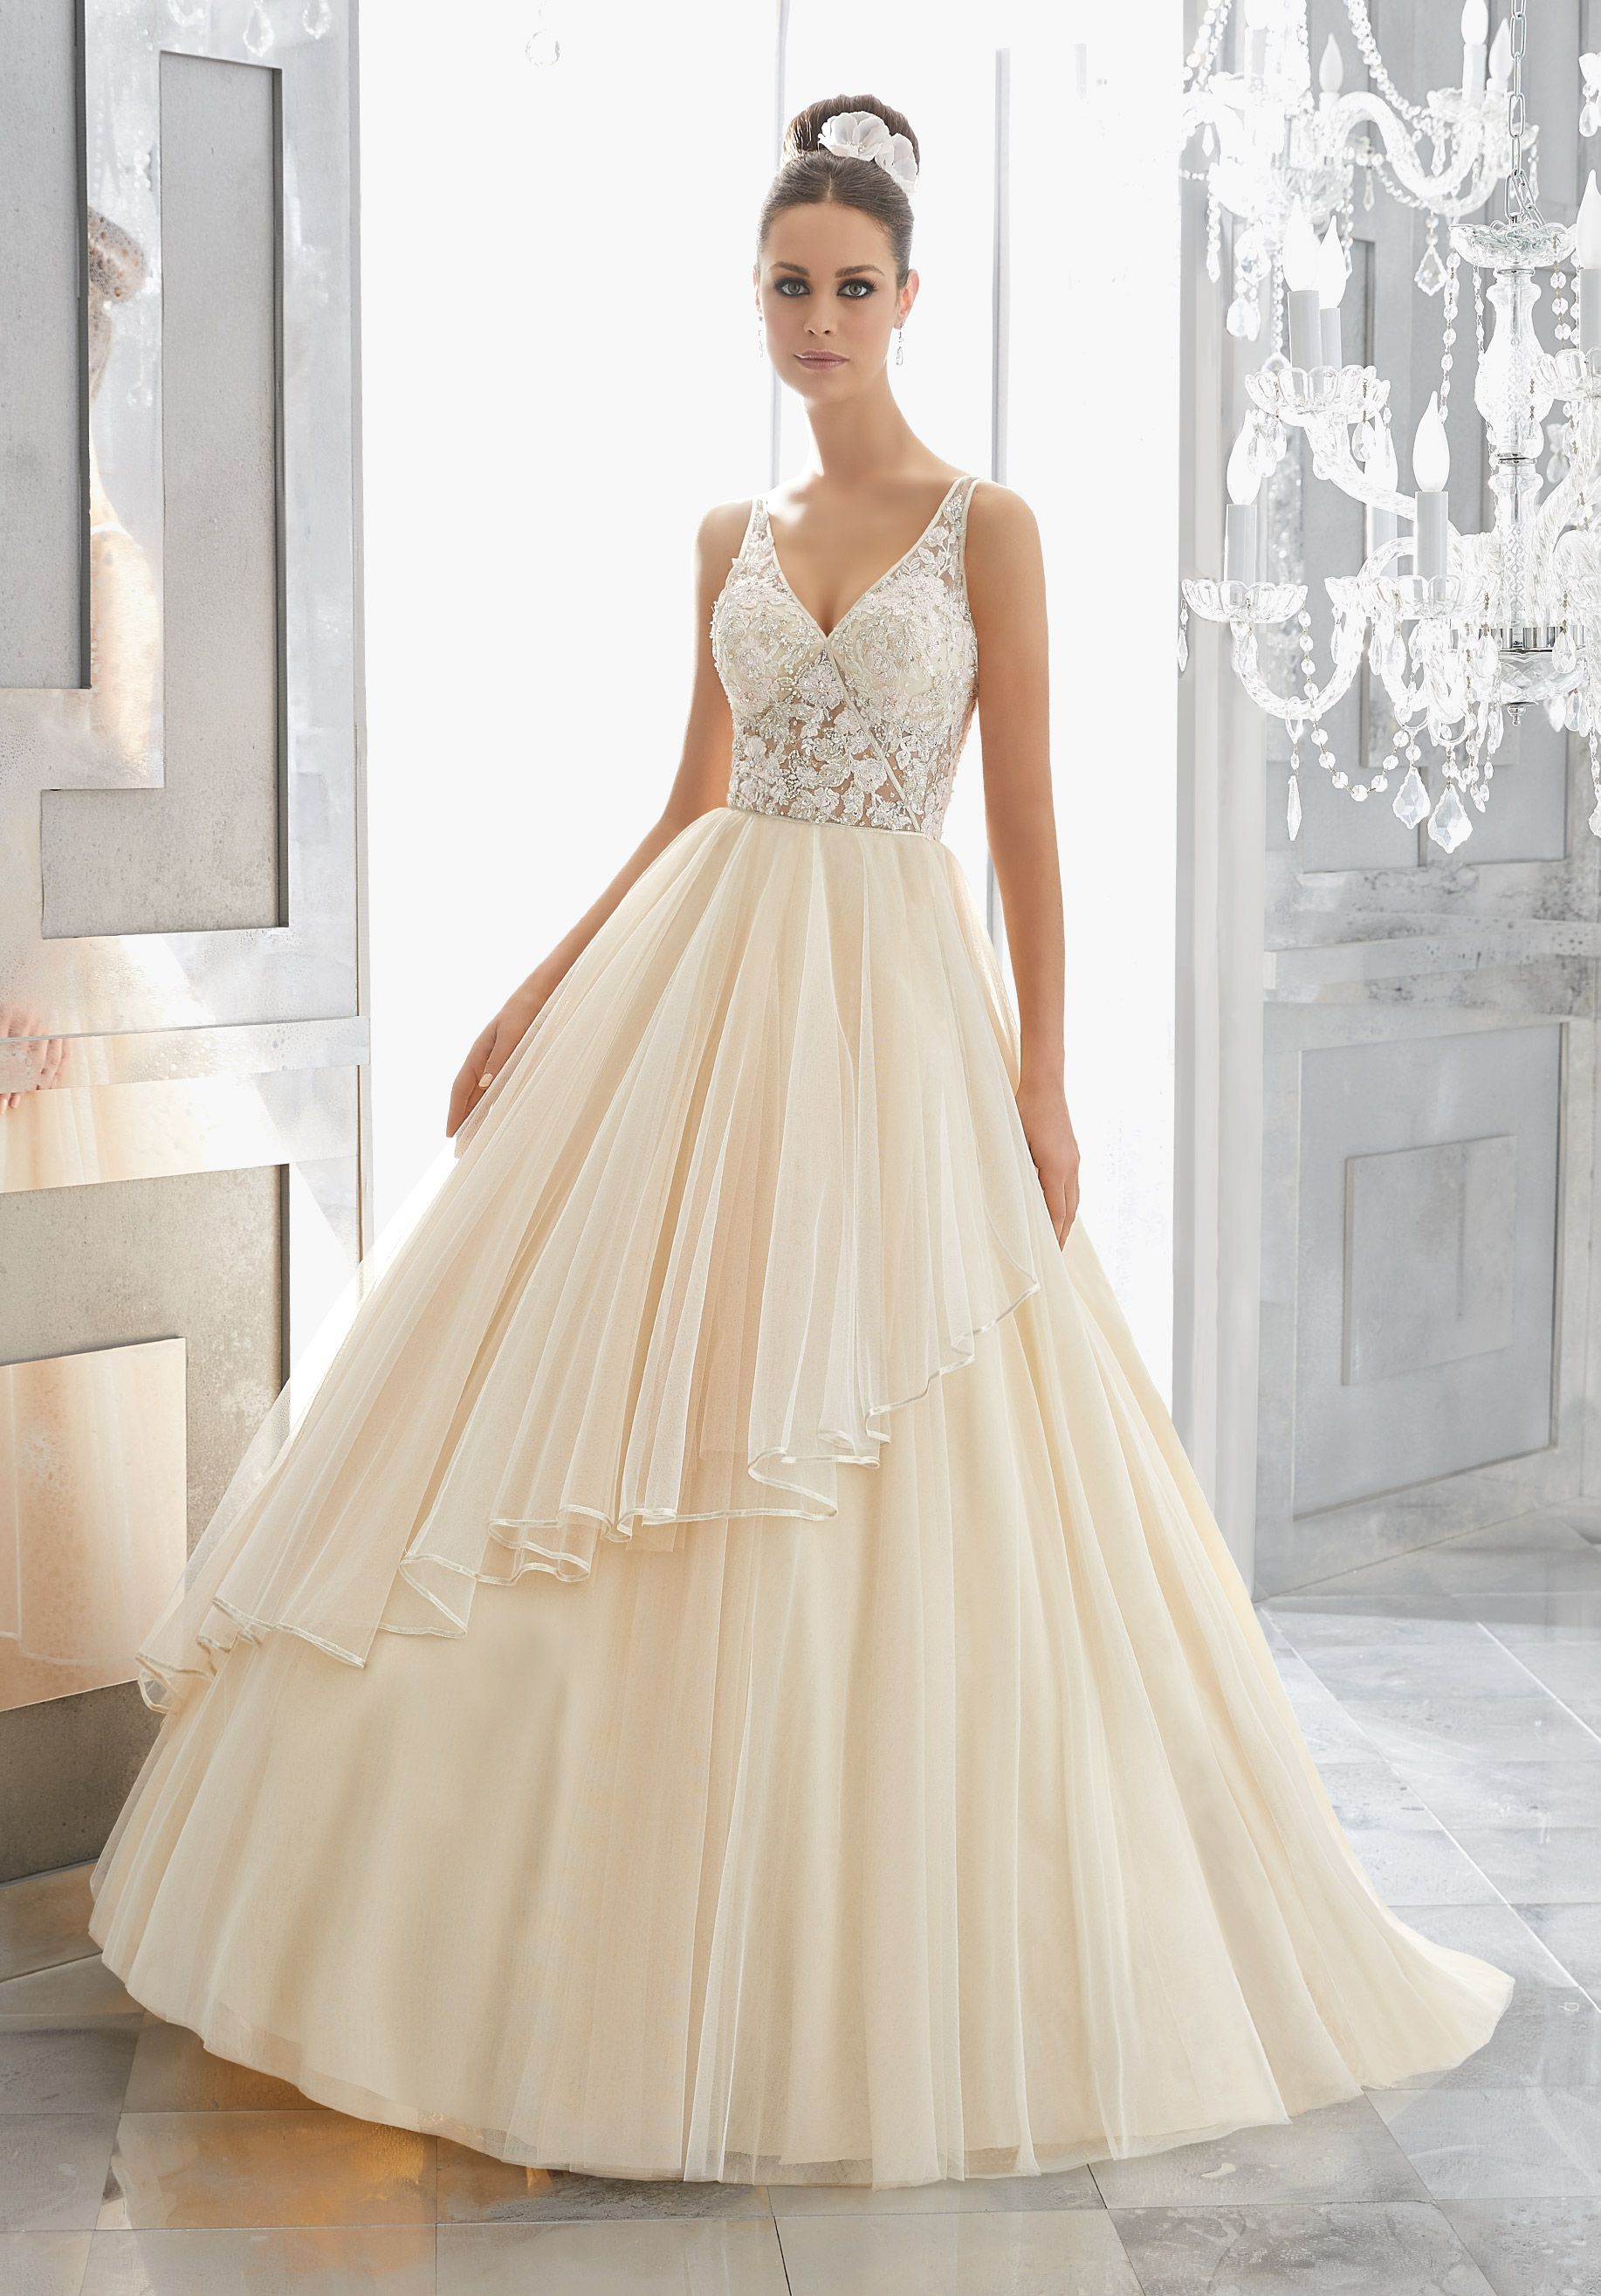 This Dreamy Bridal Ballgown Features A Delicate Crystal Beaded And Embroidered Sheer Bodice Paired With Silky Net Ball Gown Finished In Ribbon Edging